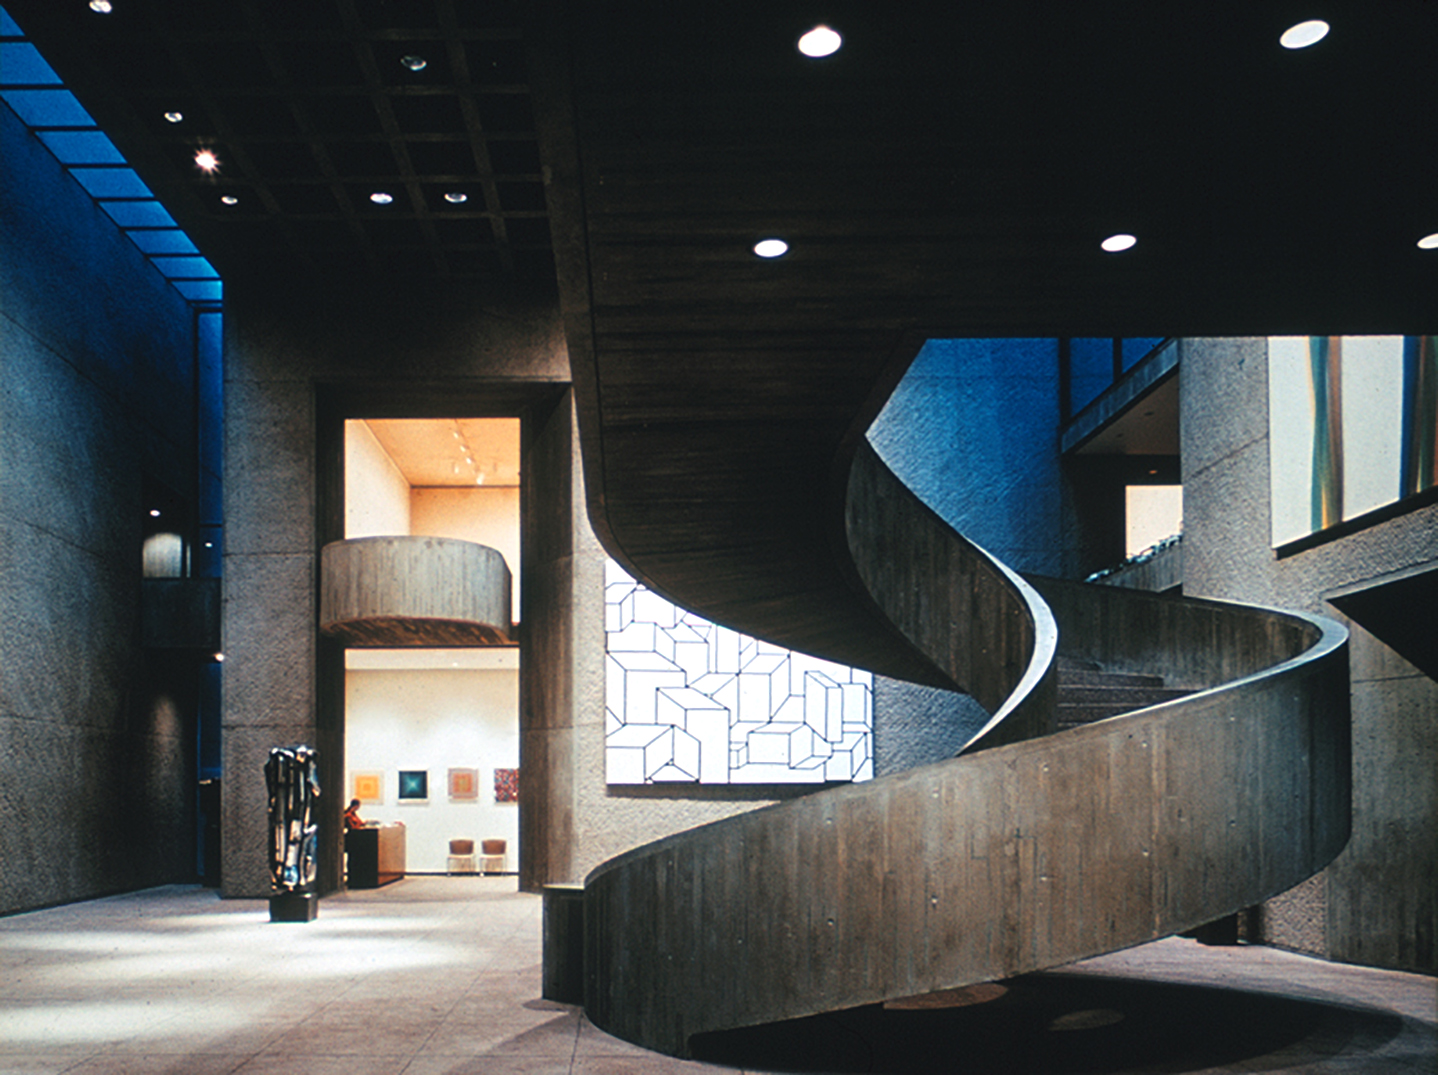 Everson Museum of Art